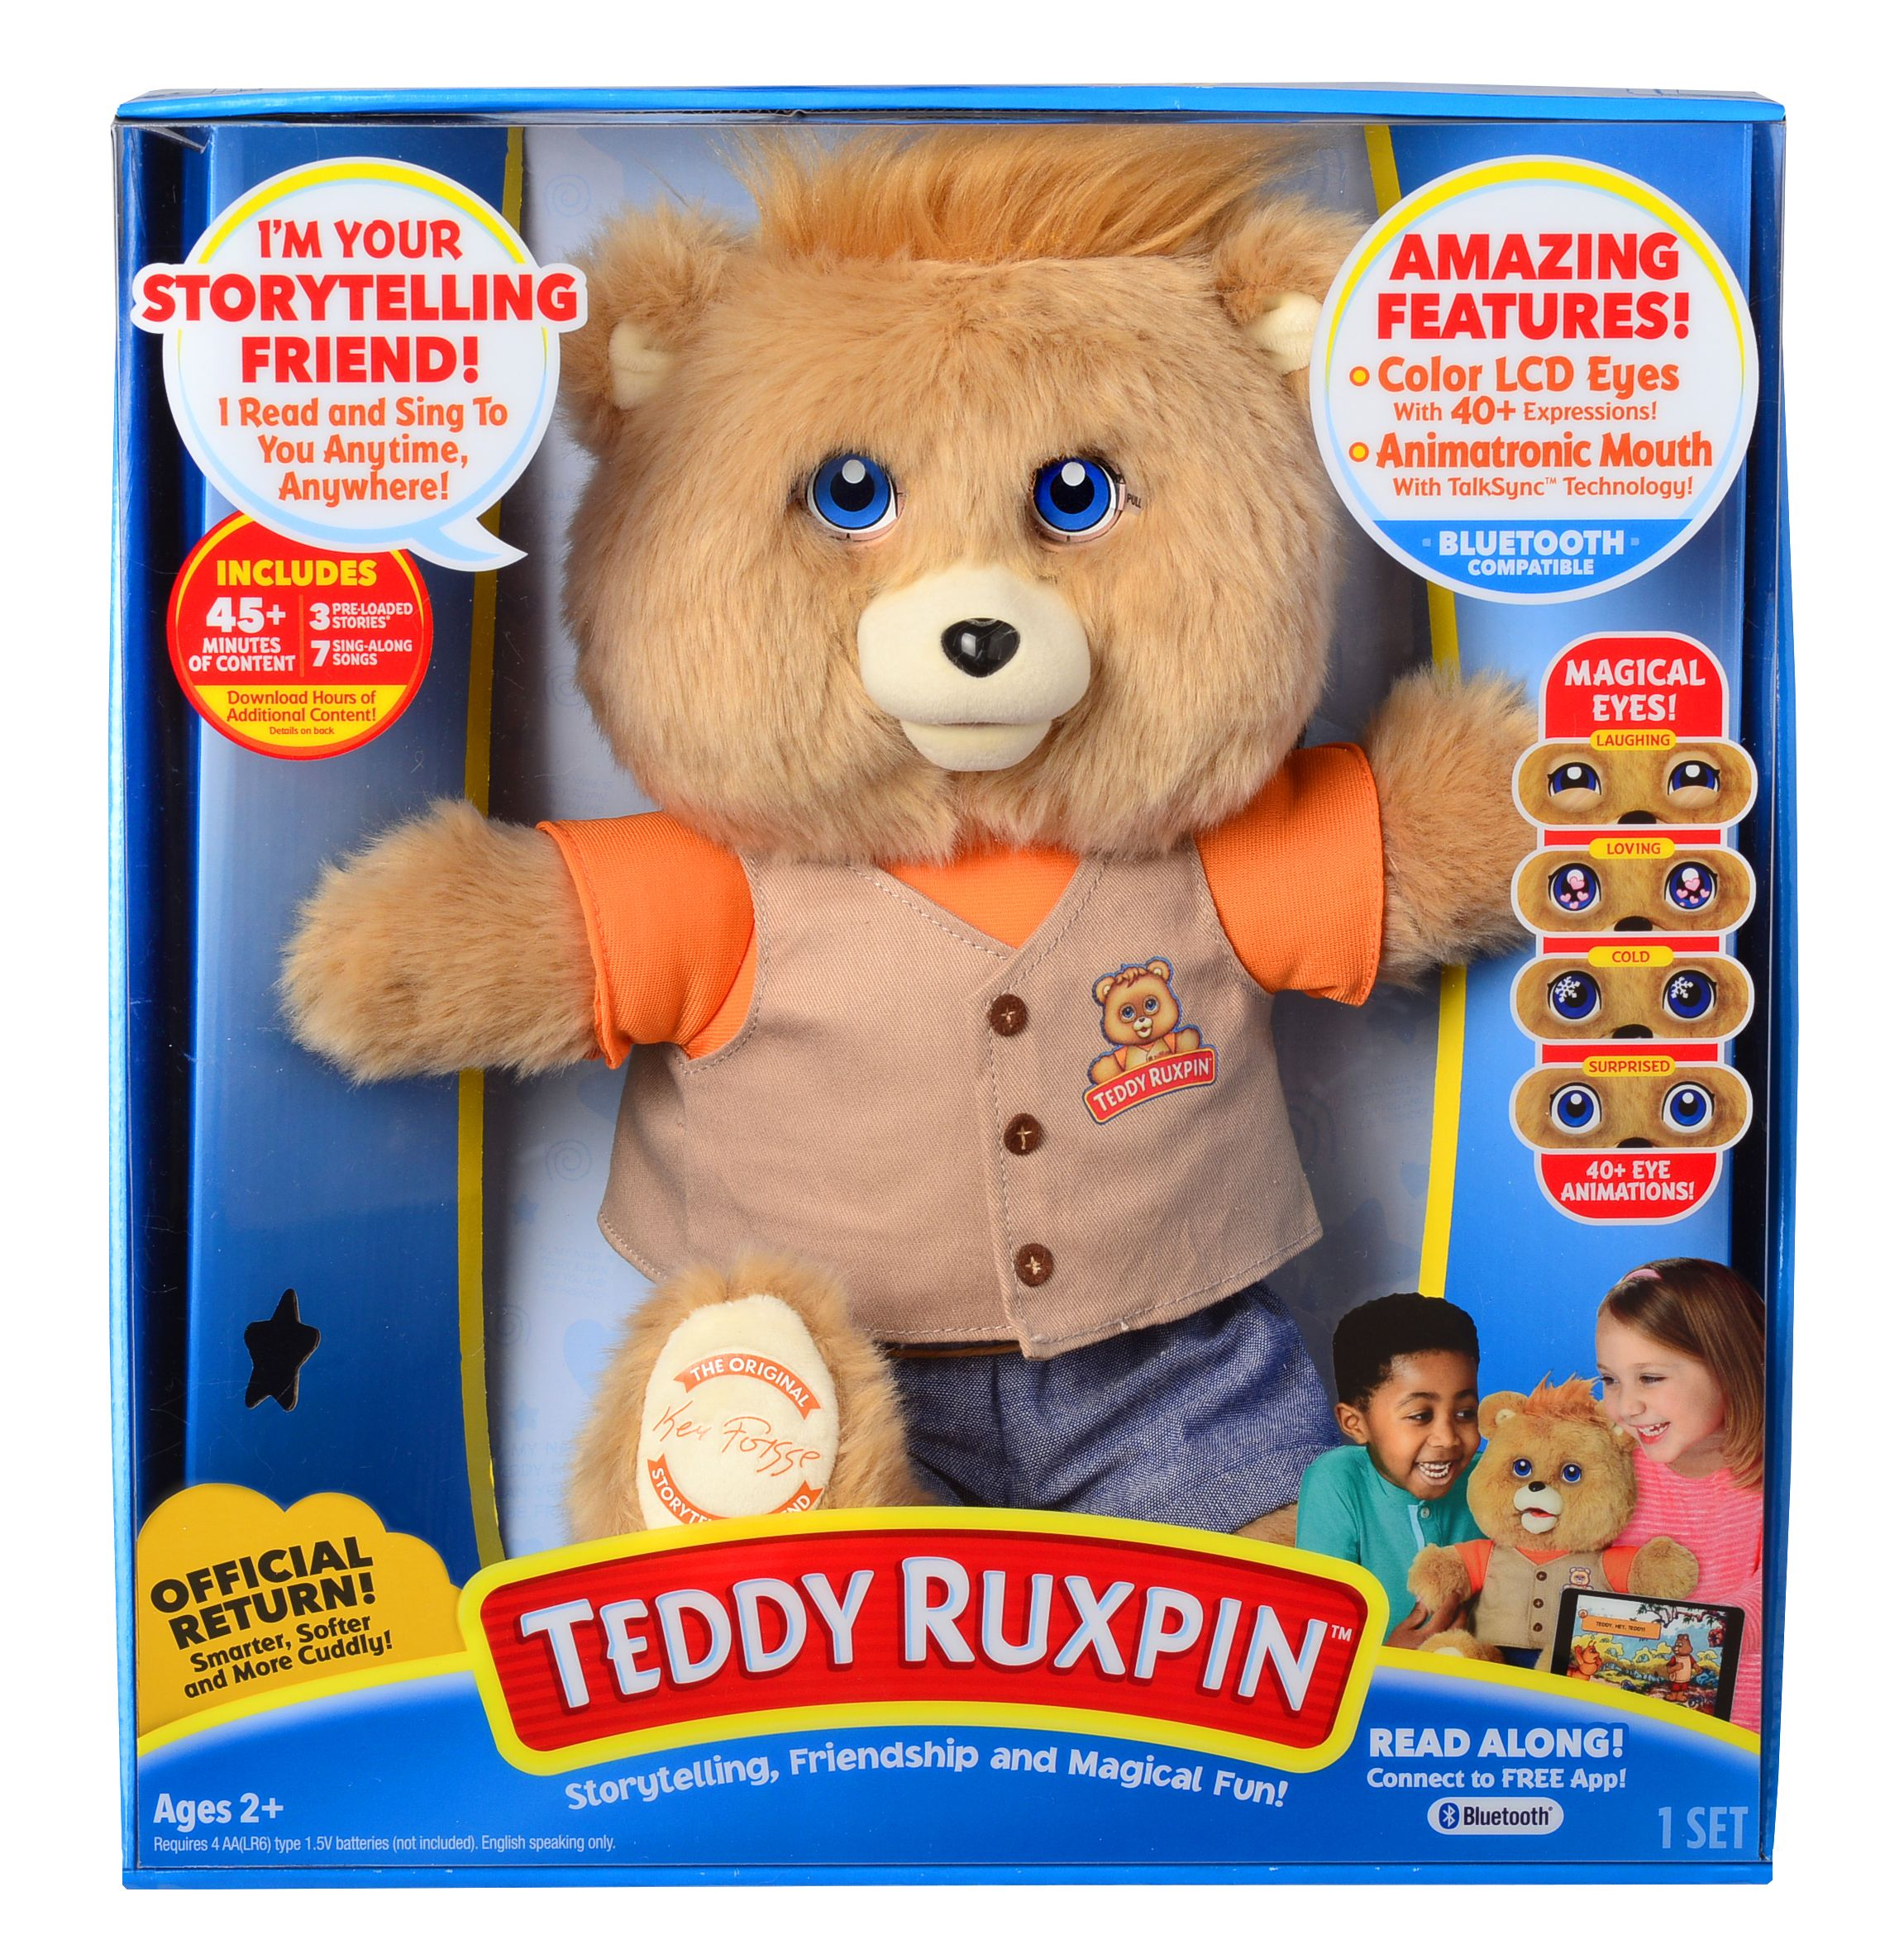 Teddy Ruxpin - Original Storytelling Friend